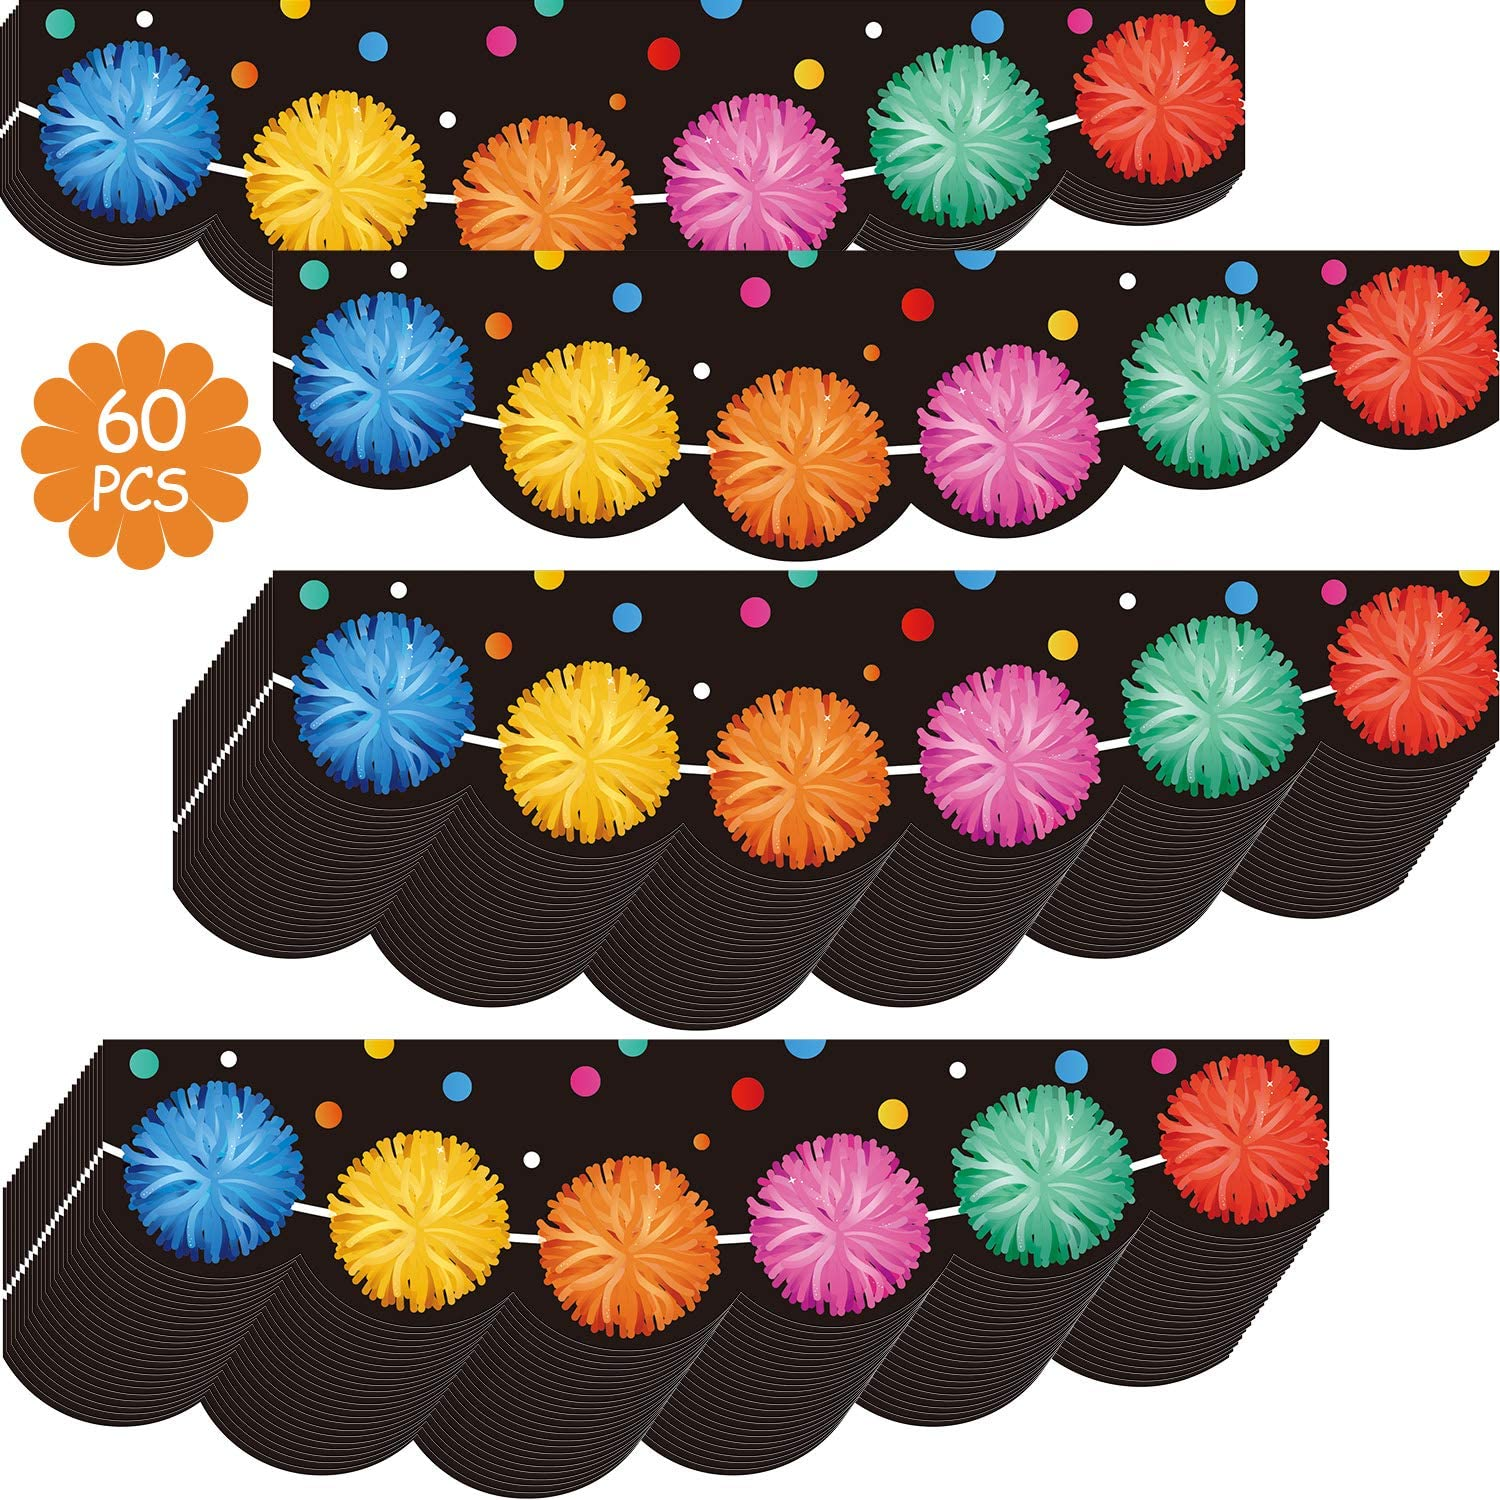 60 Pieces Pom-Poms Borders Colored Pom-Poms Trimmer Die-Cut Border Trim Labels Bulletin Board Classroom Decor Stickers Table Desk Self-Adhesive Scalloped Border for Birthday Baby Shower School Party